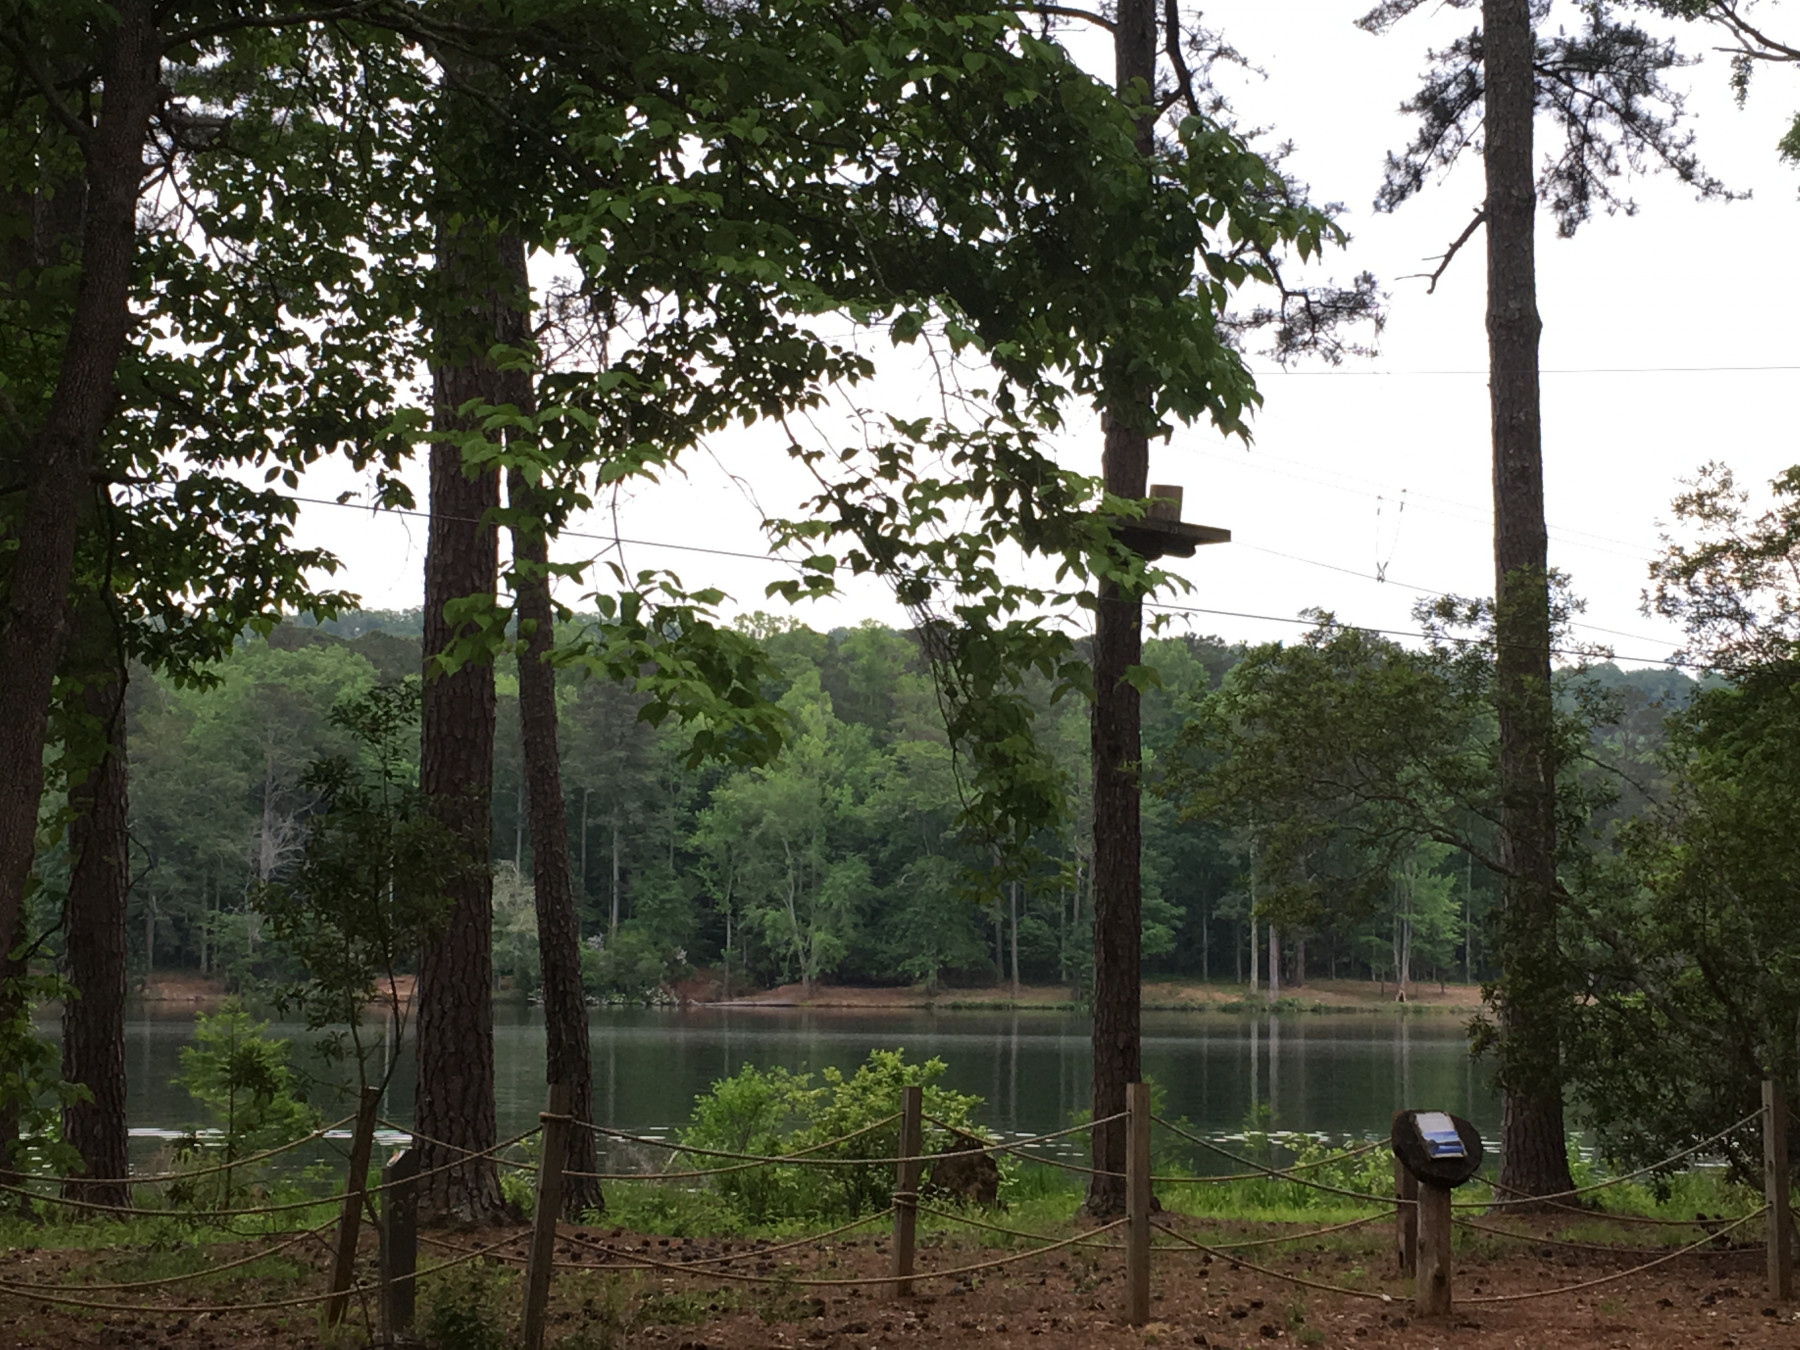 Staycations \ Angelman Syndrome News \ A tranquil nature scene at Callaway Gardens Resort and Gardens in Pine Mountain, Georgia.